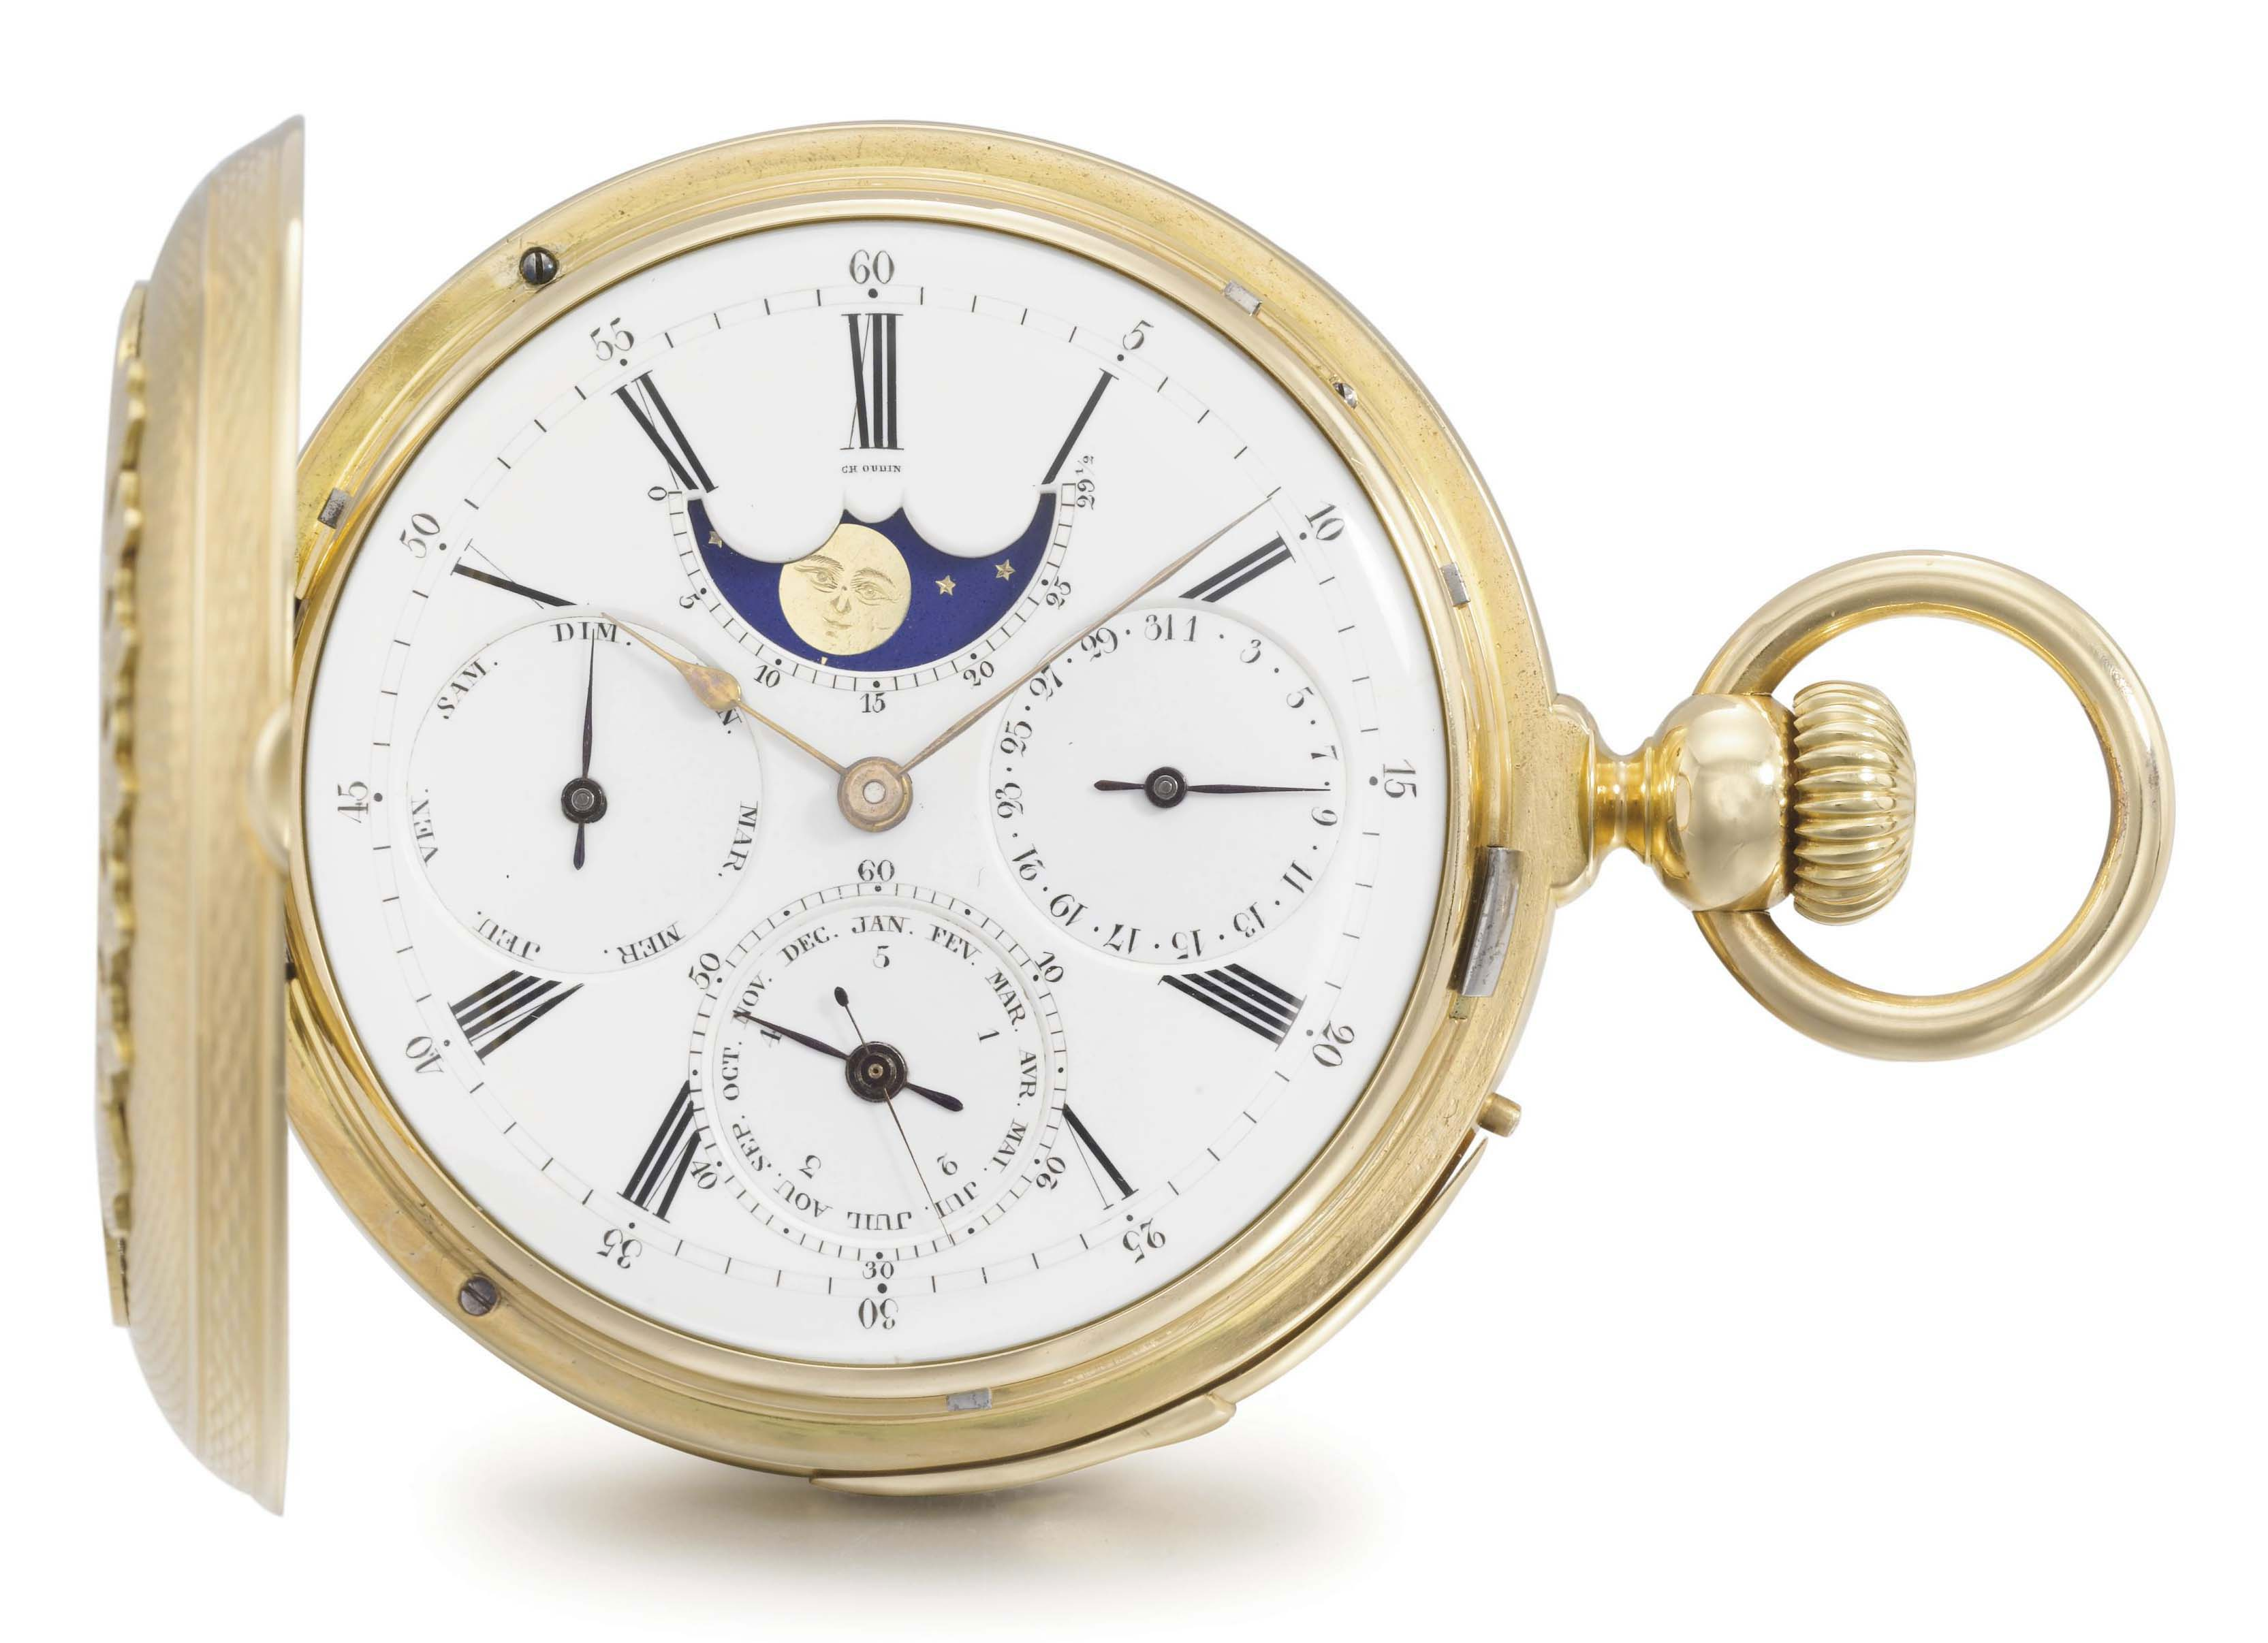 Louis Audemars, made for Charles Oudin. A very fine and heavy 18K gold hunter case quarter repeating full calendar keyless lever watch with moon phases